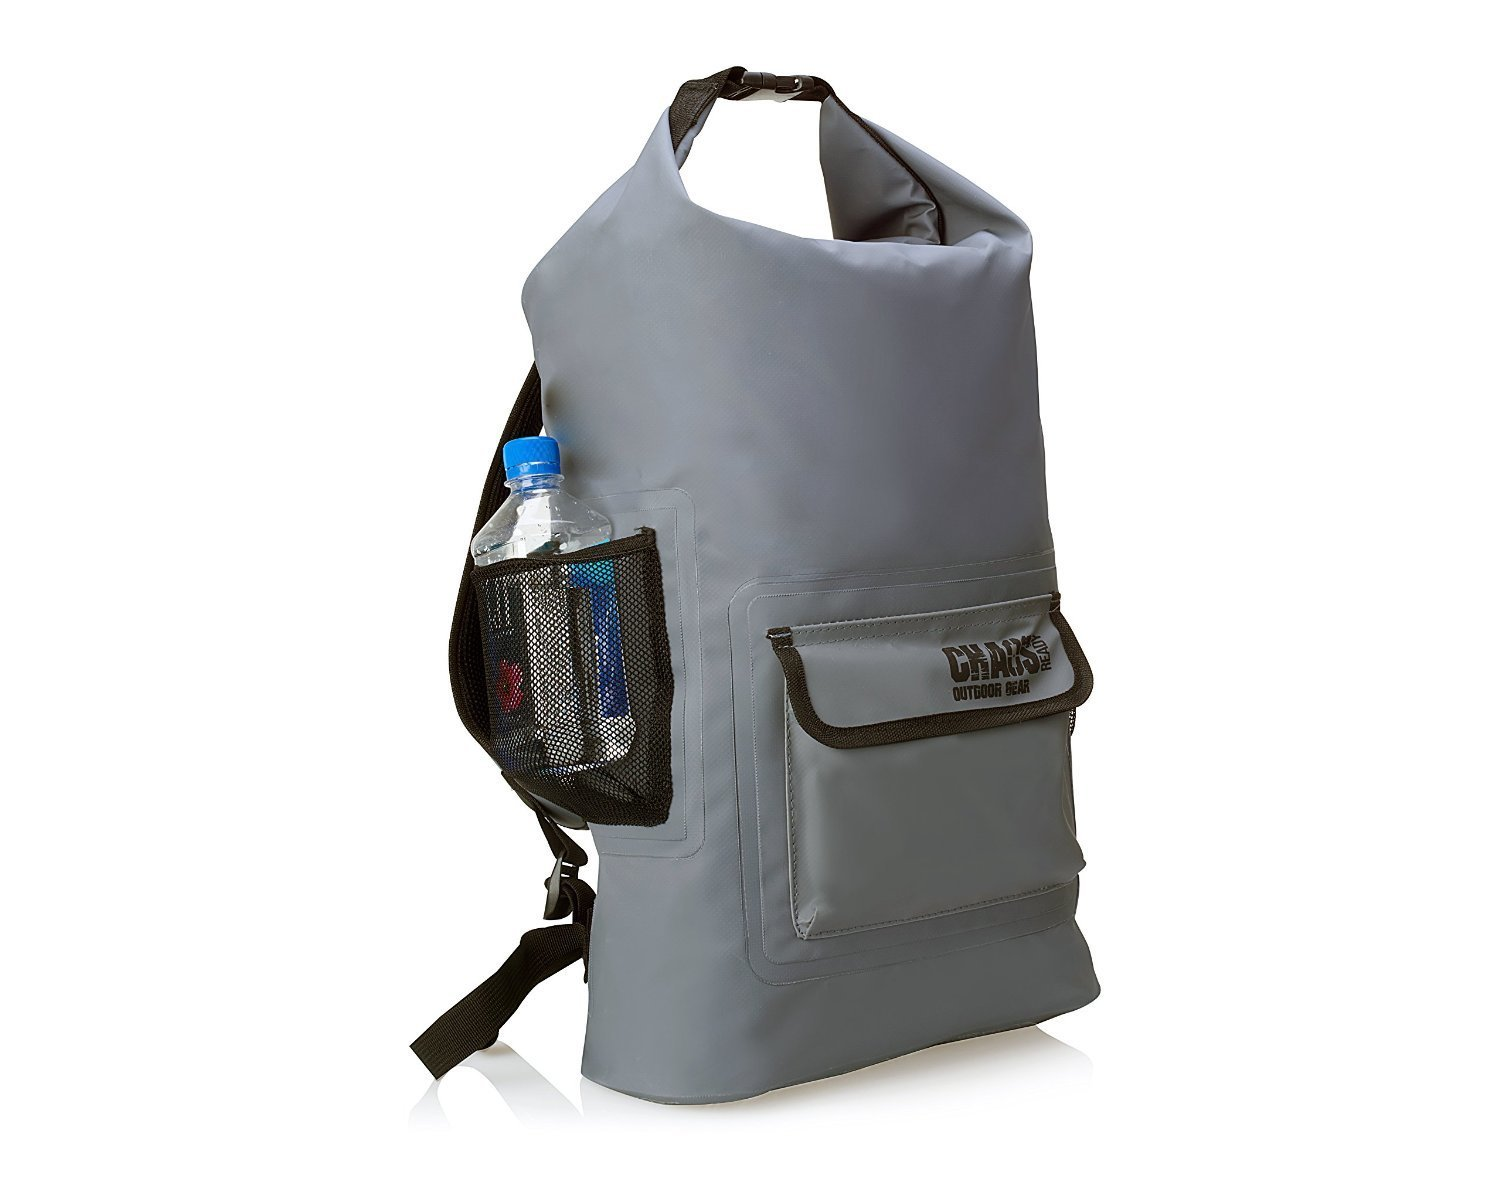 9-waterproof backpack